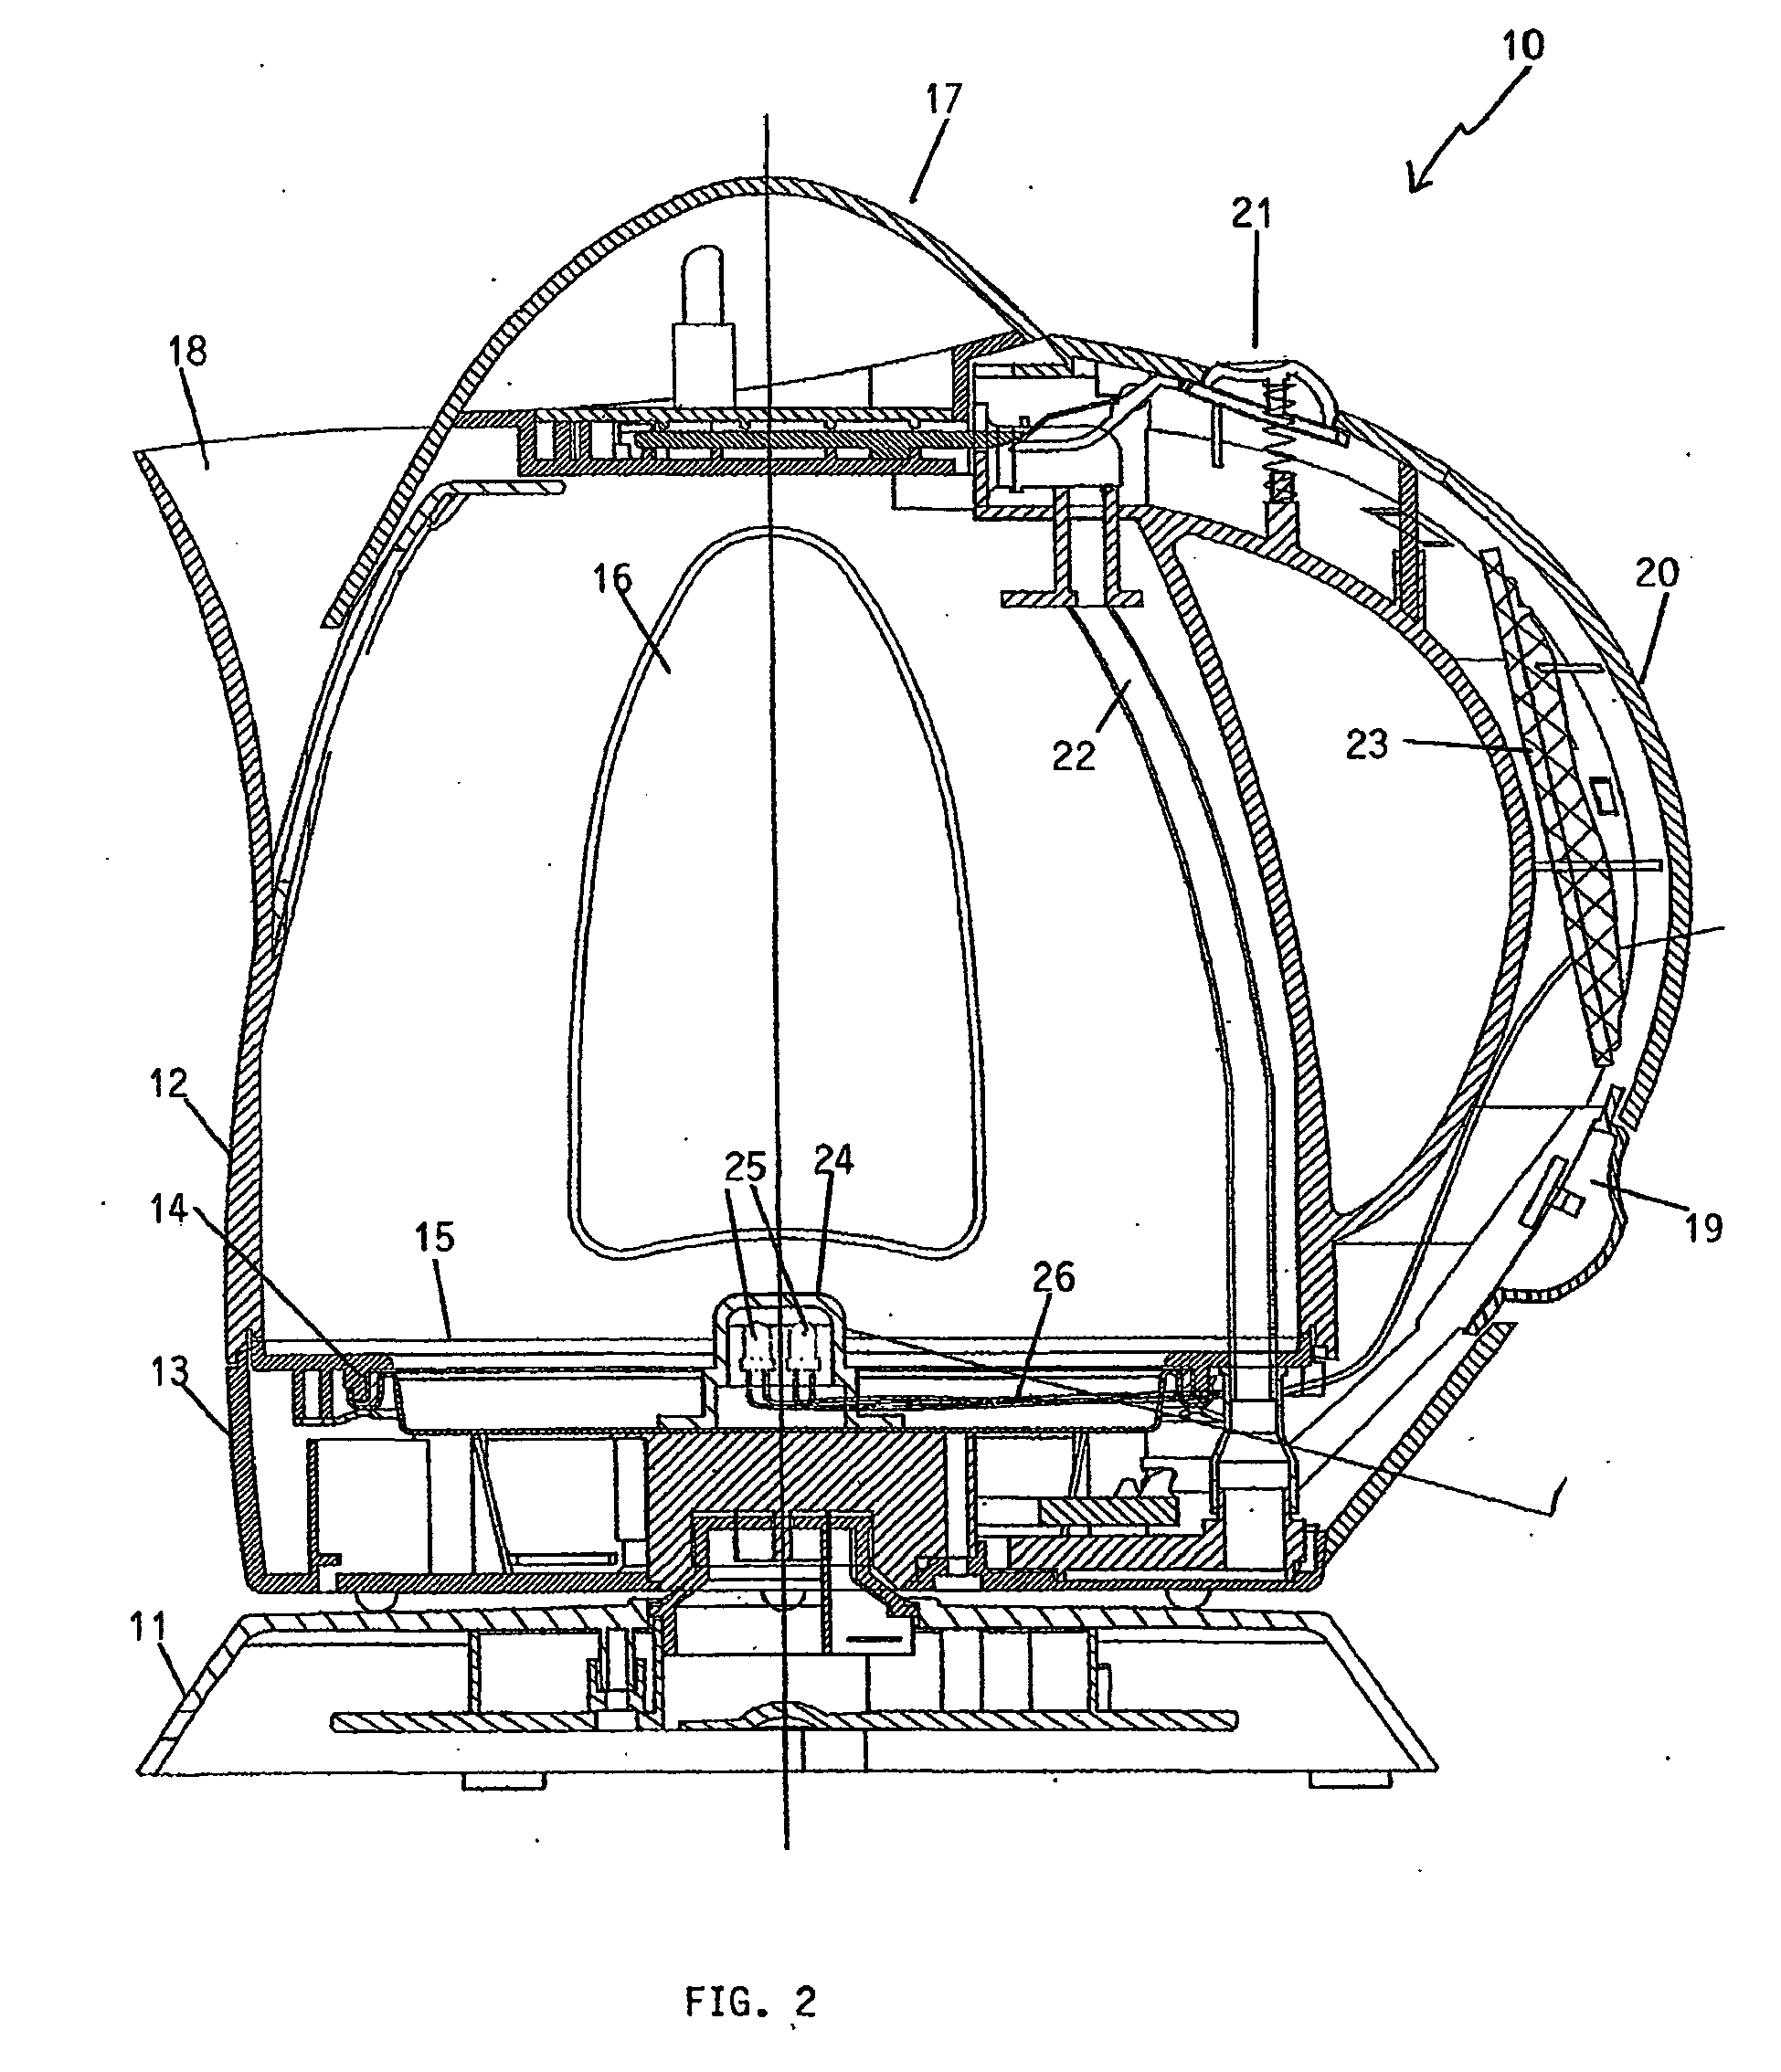 patent ep1597989b1 - electric kettle having led temperature indication through water